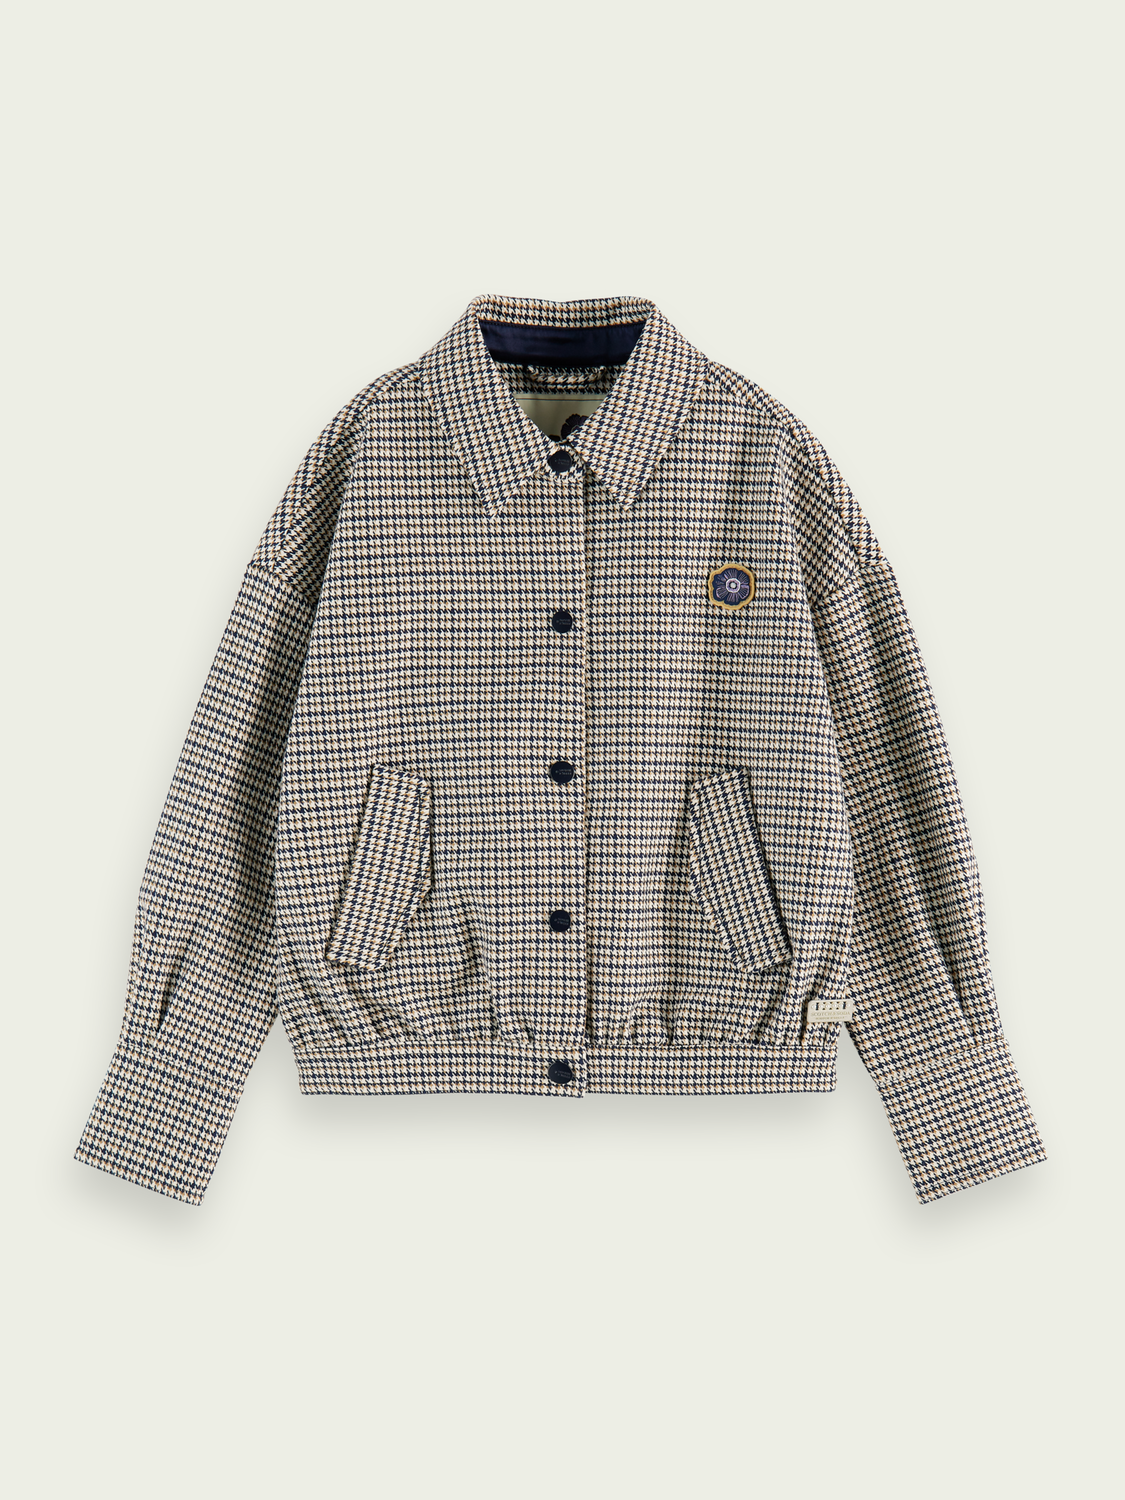 Kids Tailored houndstooth cotton jacket